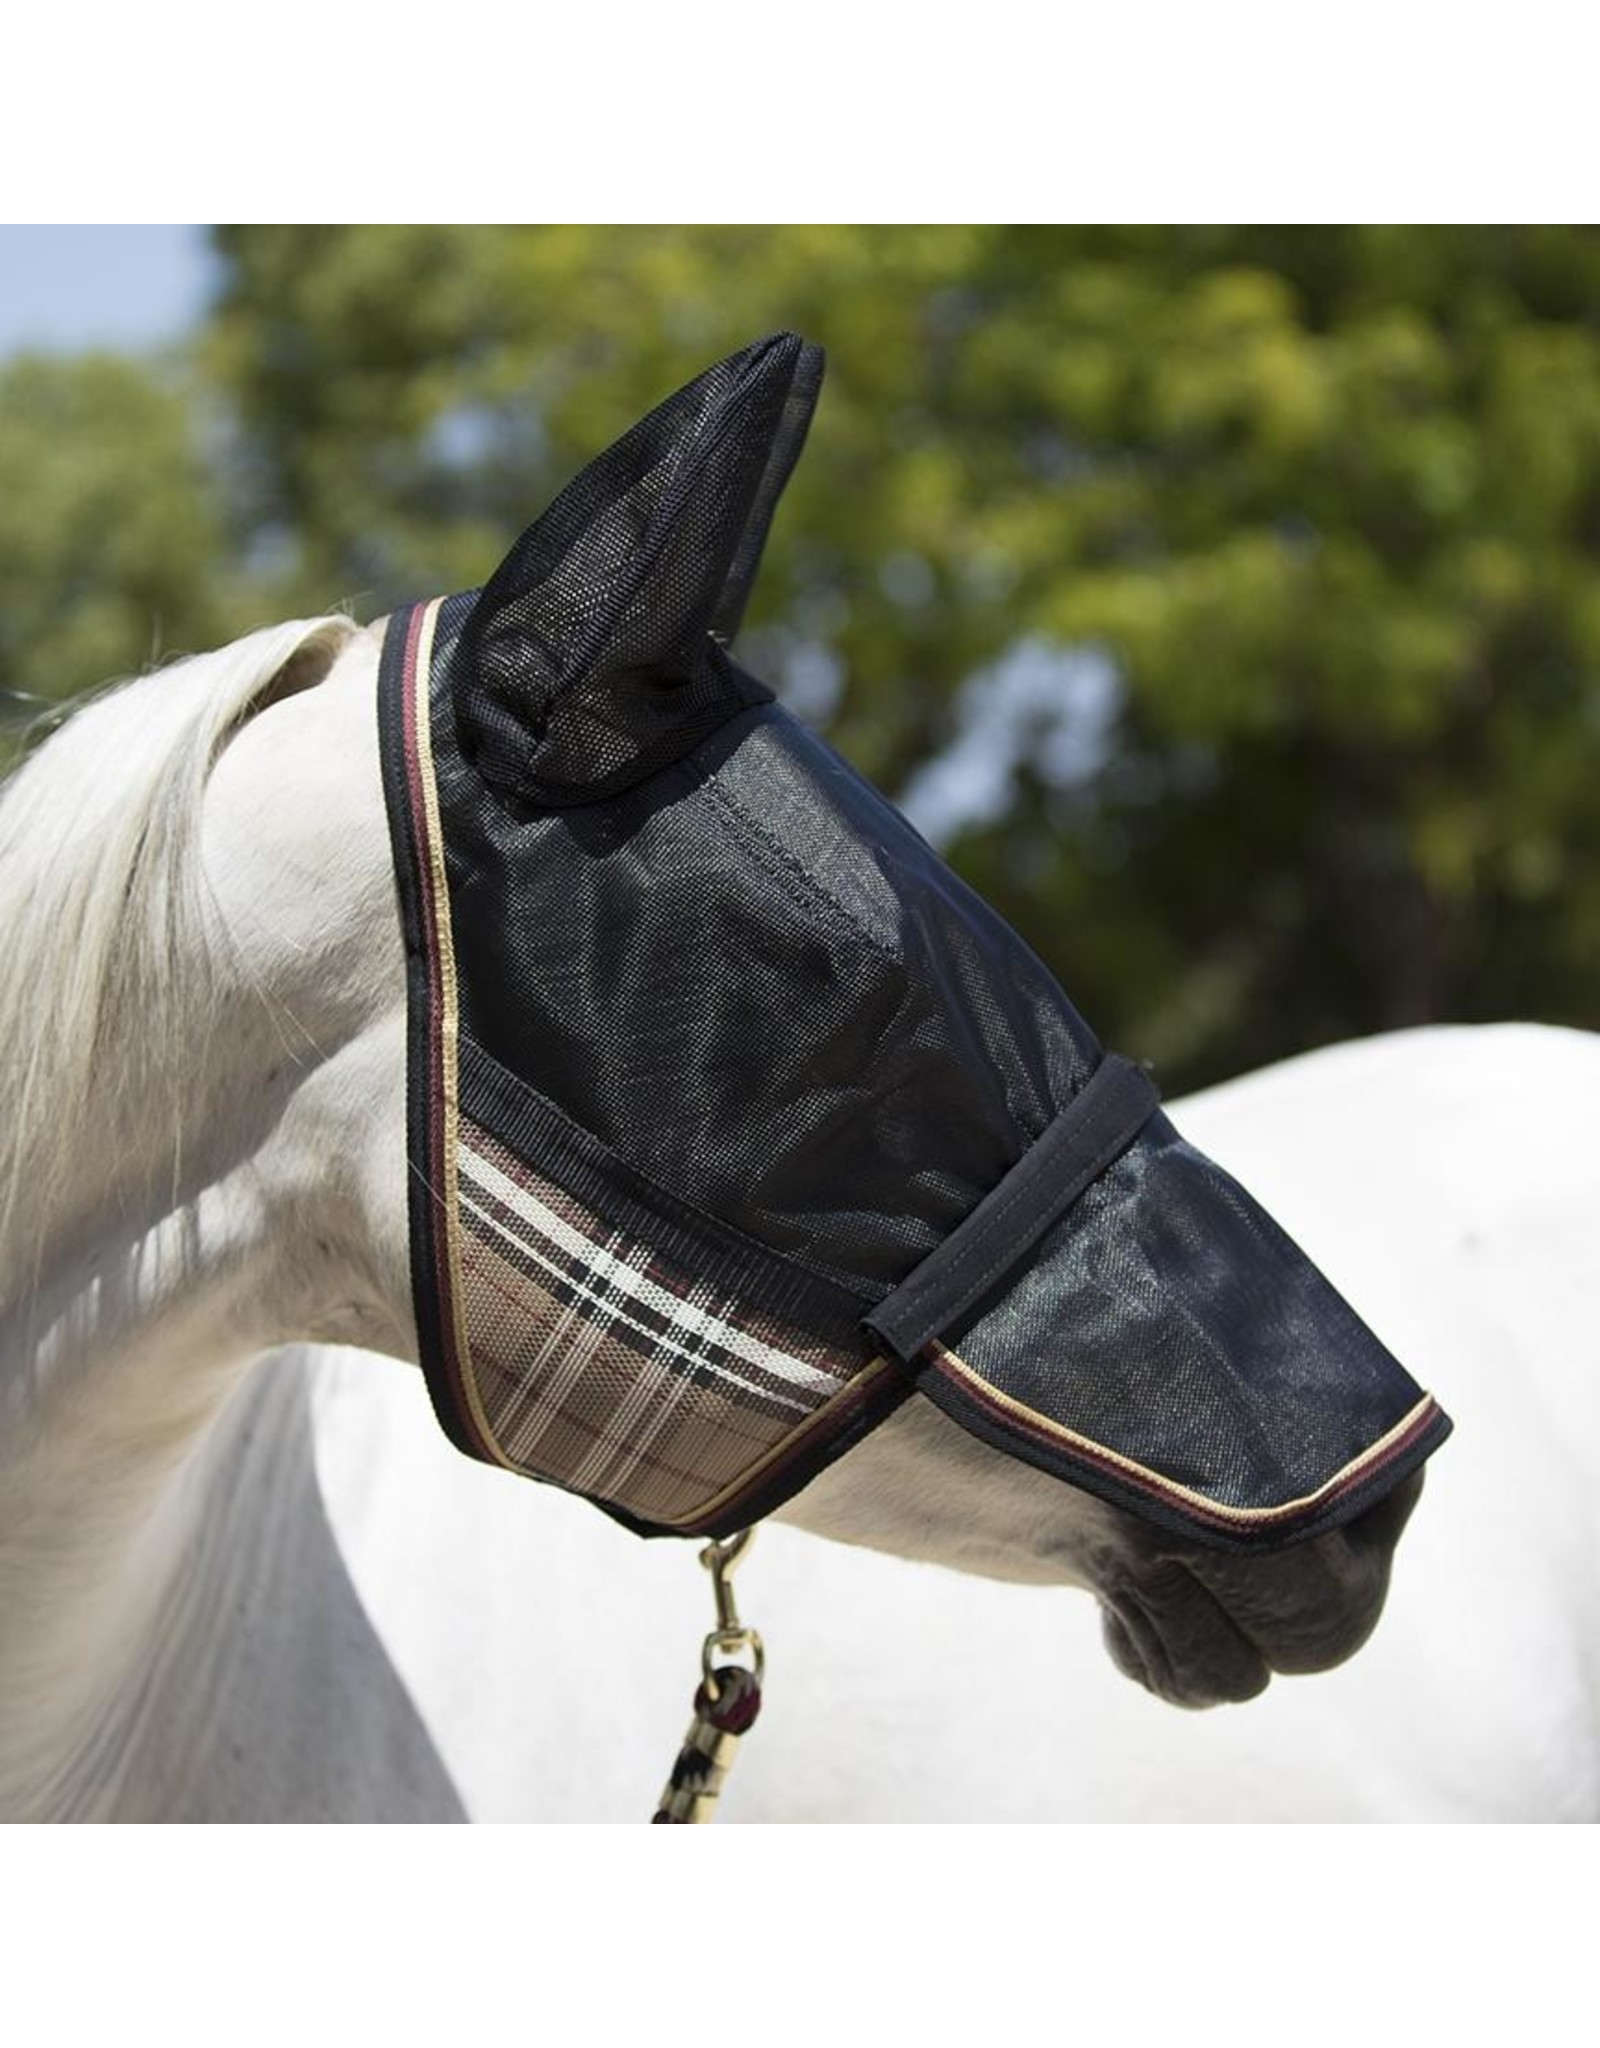 Kensington UViator CatchMask w/Ears & Removable Nose & Forelock